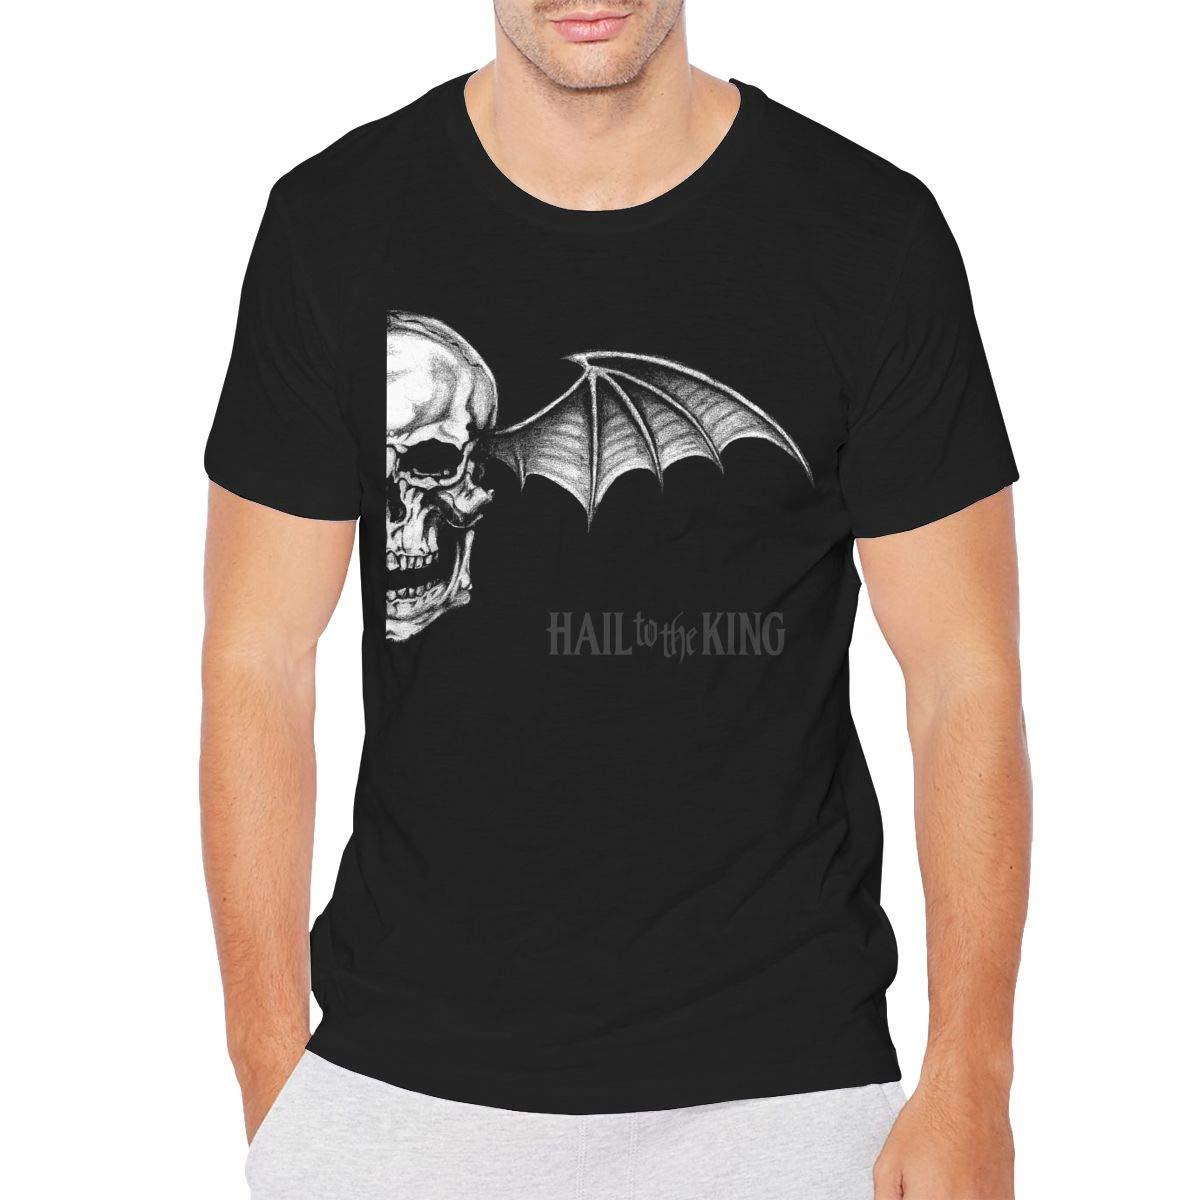 KOLODZIEJKIMM Men Avenged Sevenfold Hail to The King Tees Round Neck Short Sleeve Tshirts Black